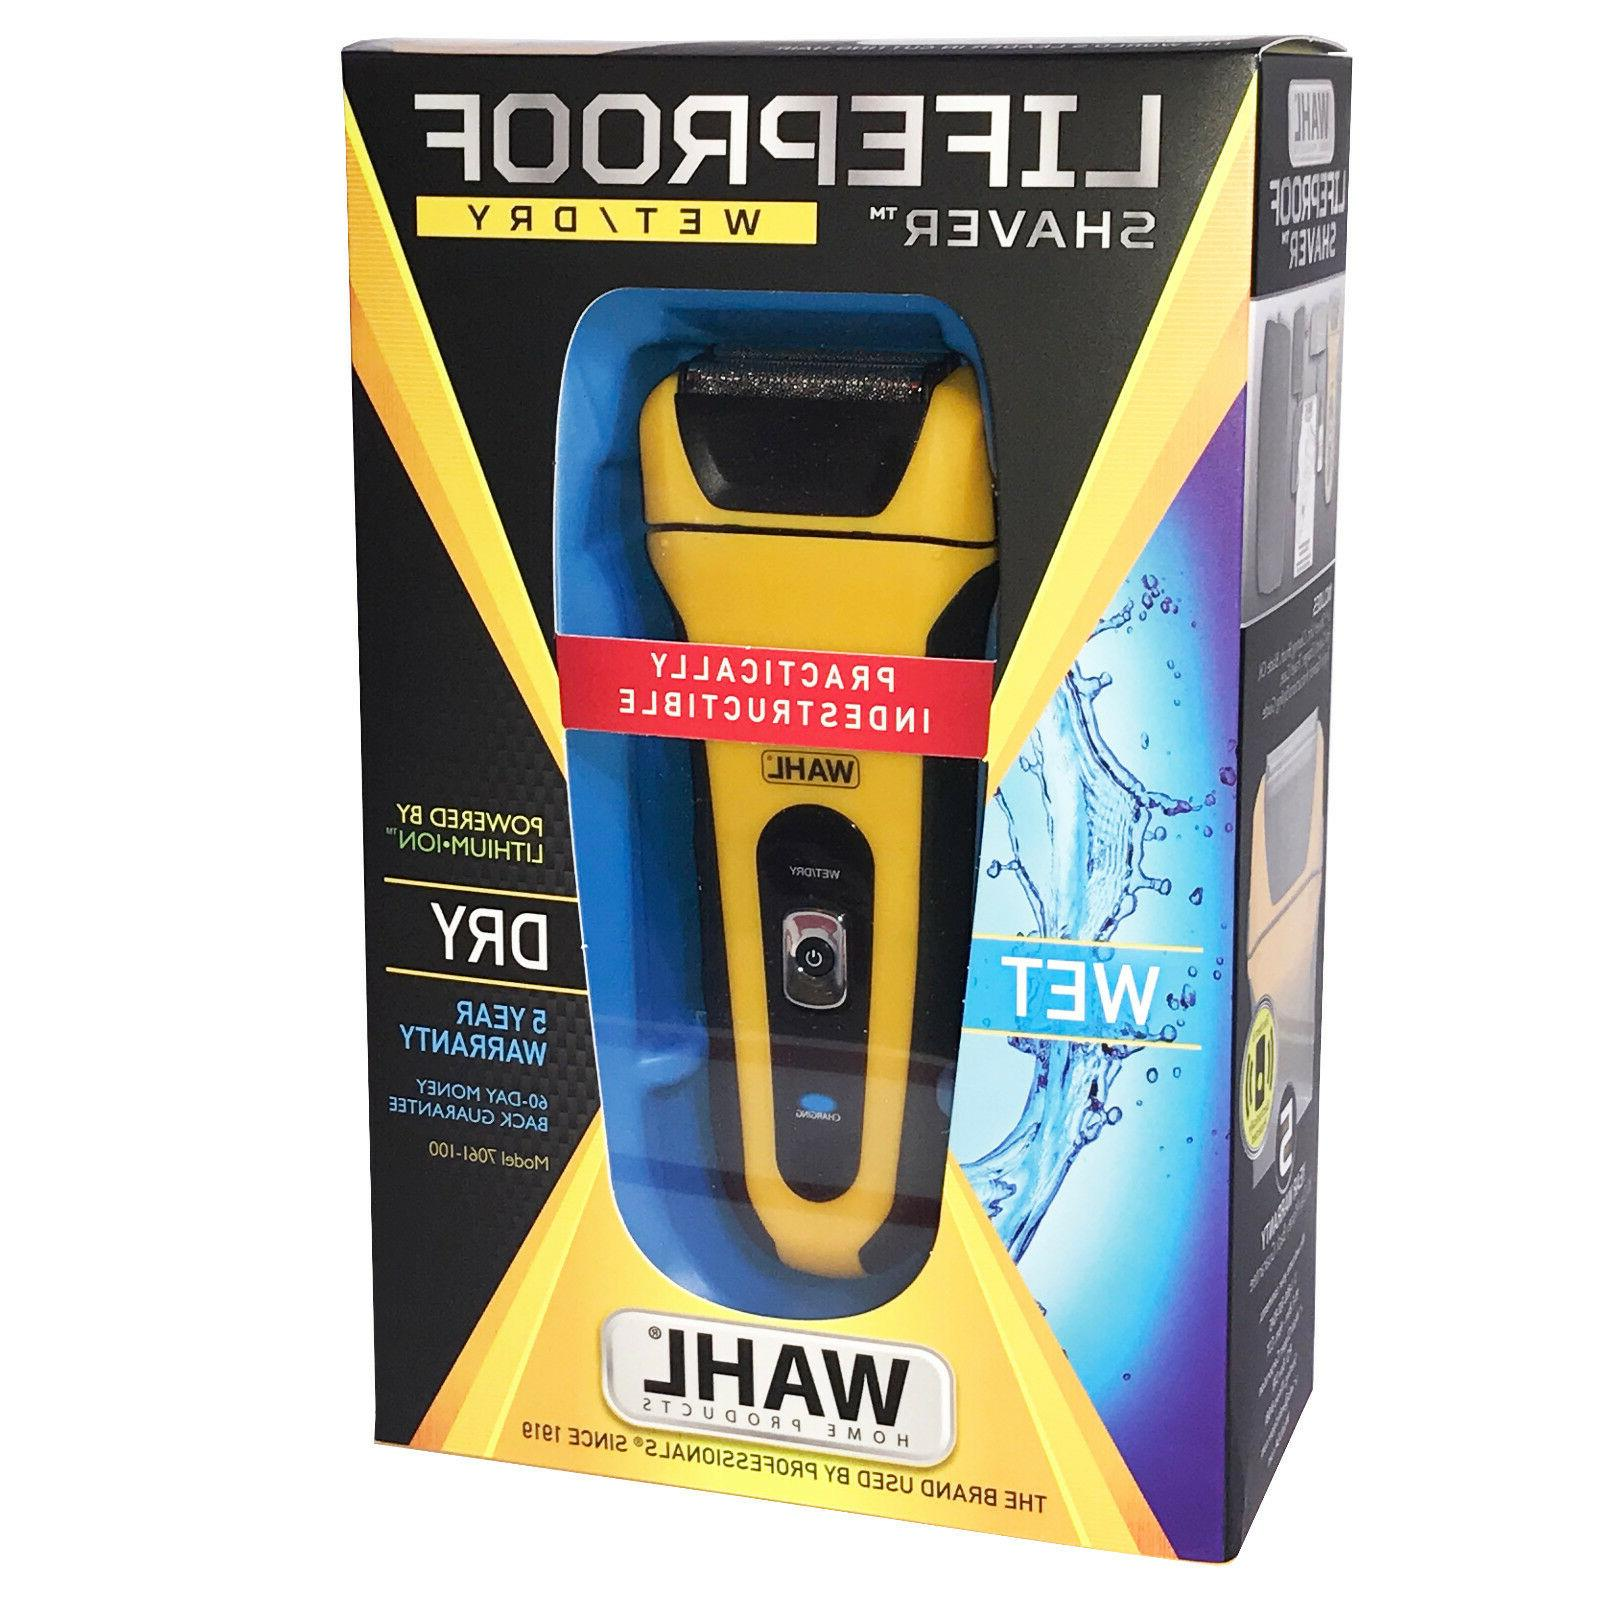 NEW! WAHL LifeProof FOIL SHAVER Lithium Ion Shock-Proof Wate